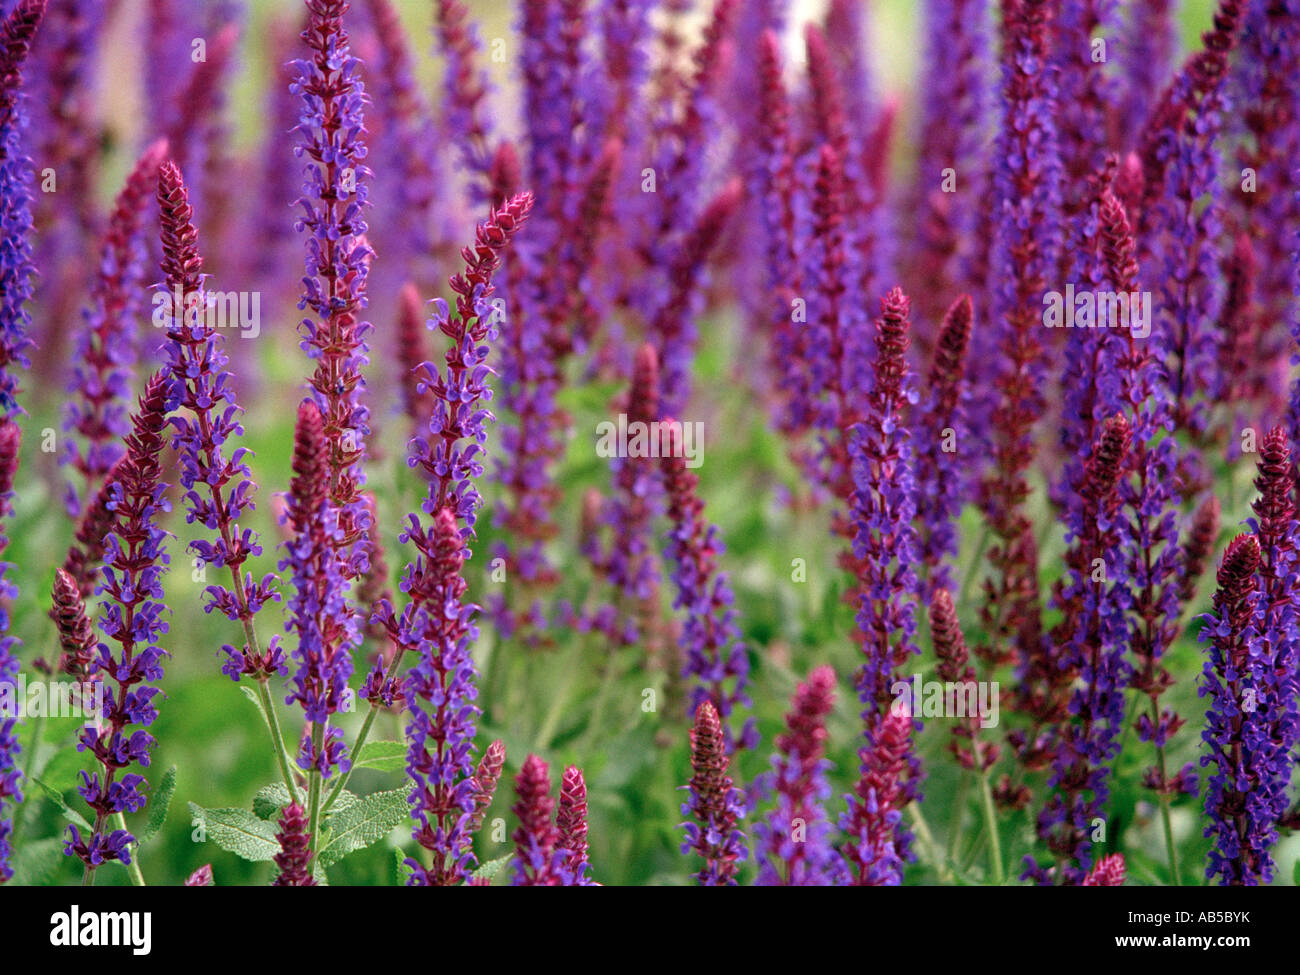 Group of Salvia Nemorosa Superba plants. - Stock Image